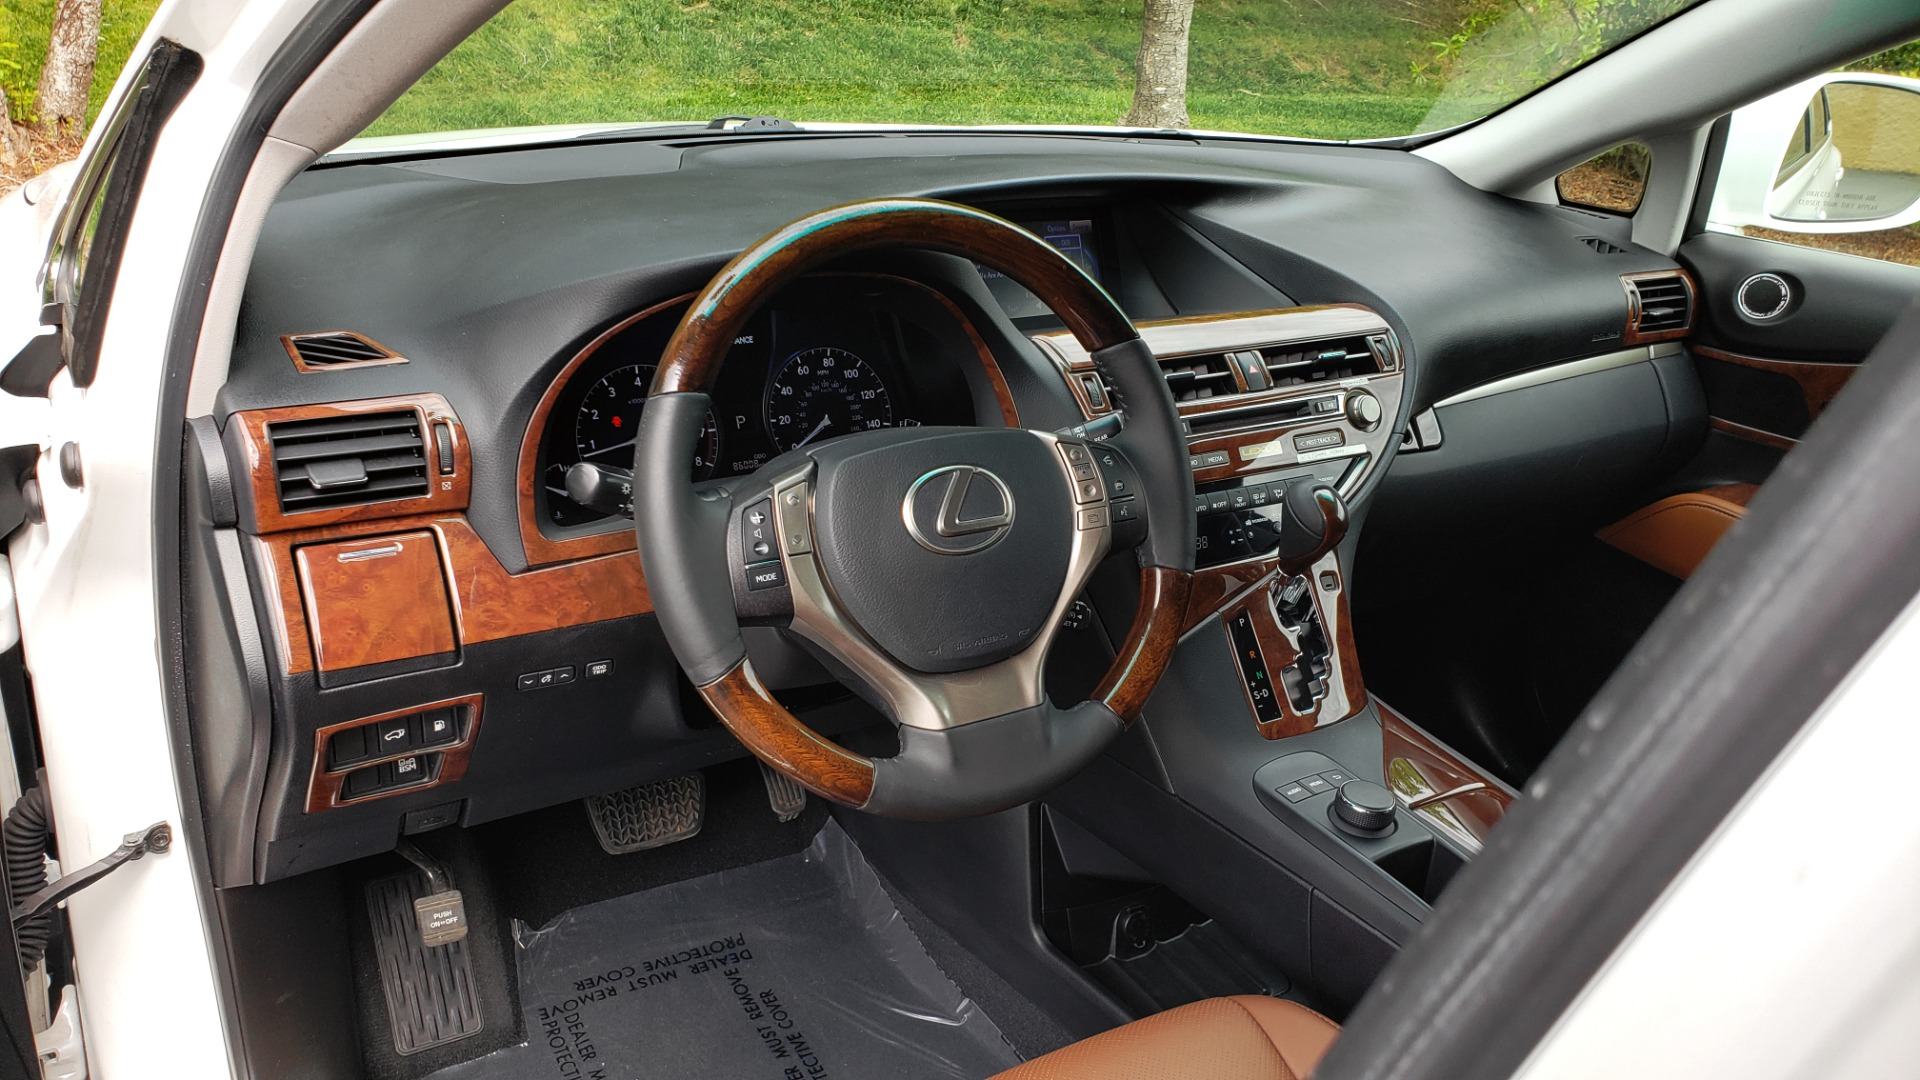 Used 2013 Lexus RX 350 PREMIUM PKG / SUNROOF / BSM / PARK ASST / REARVIEW for sale Sold at Formula Imports in Charlotte NC 28227 36